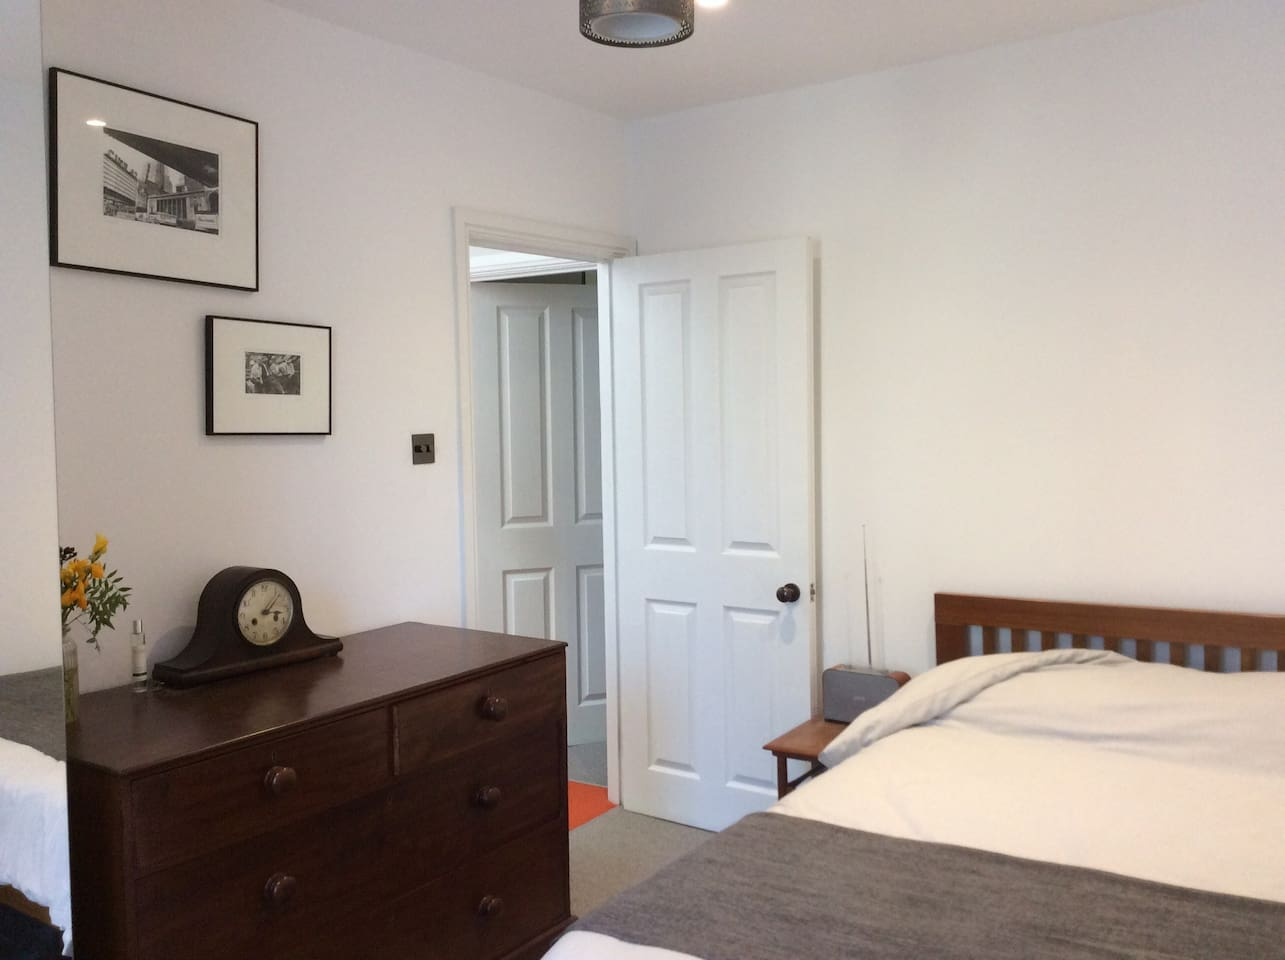 Comfy double bed with crisp cotton sheets, large chest of drawers, side table, digital radio and double mirrored wardrobe.